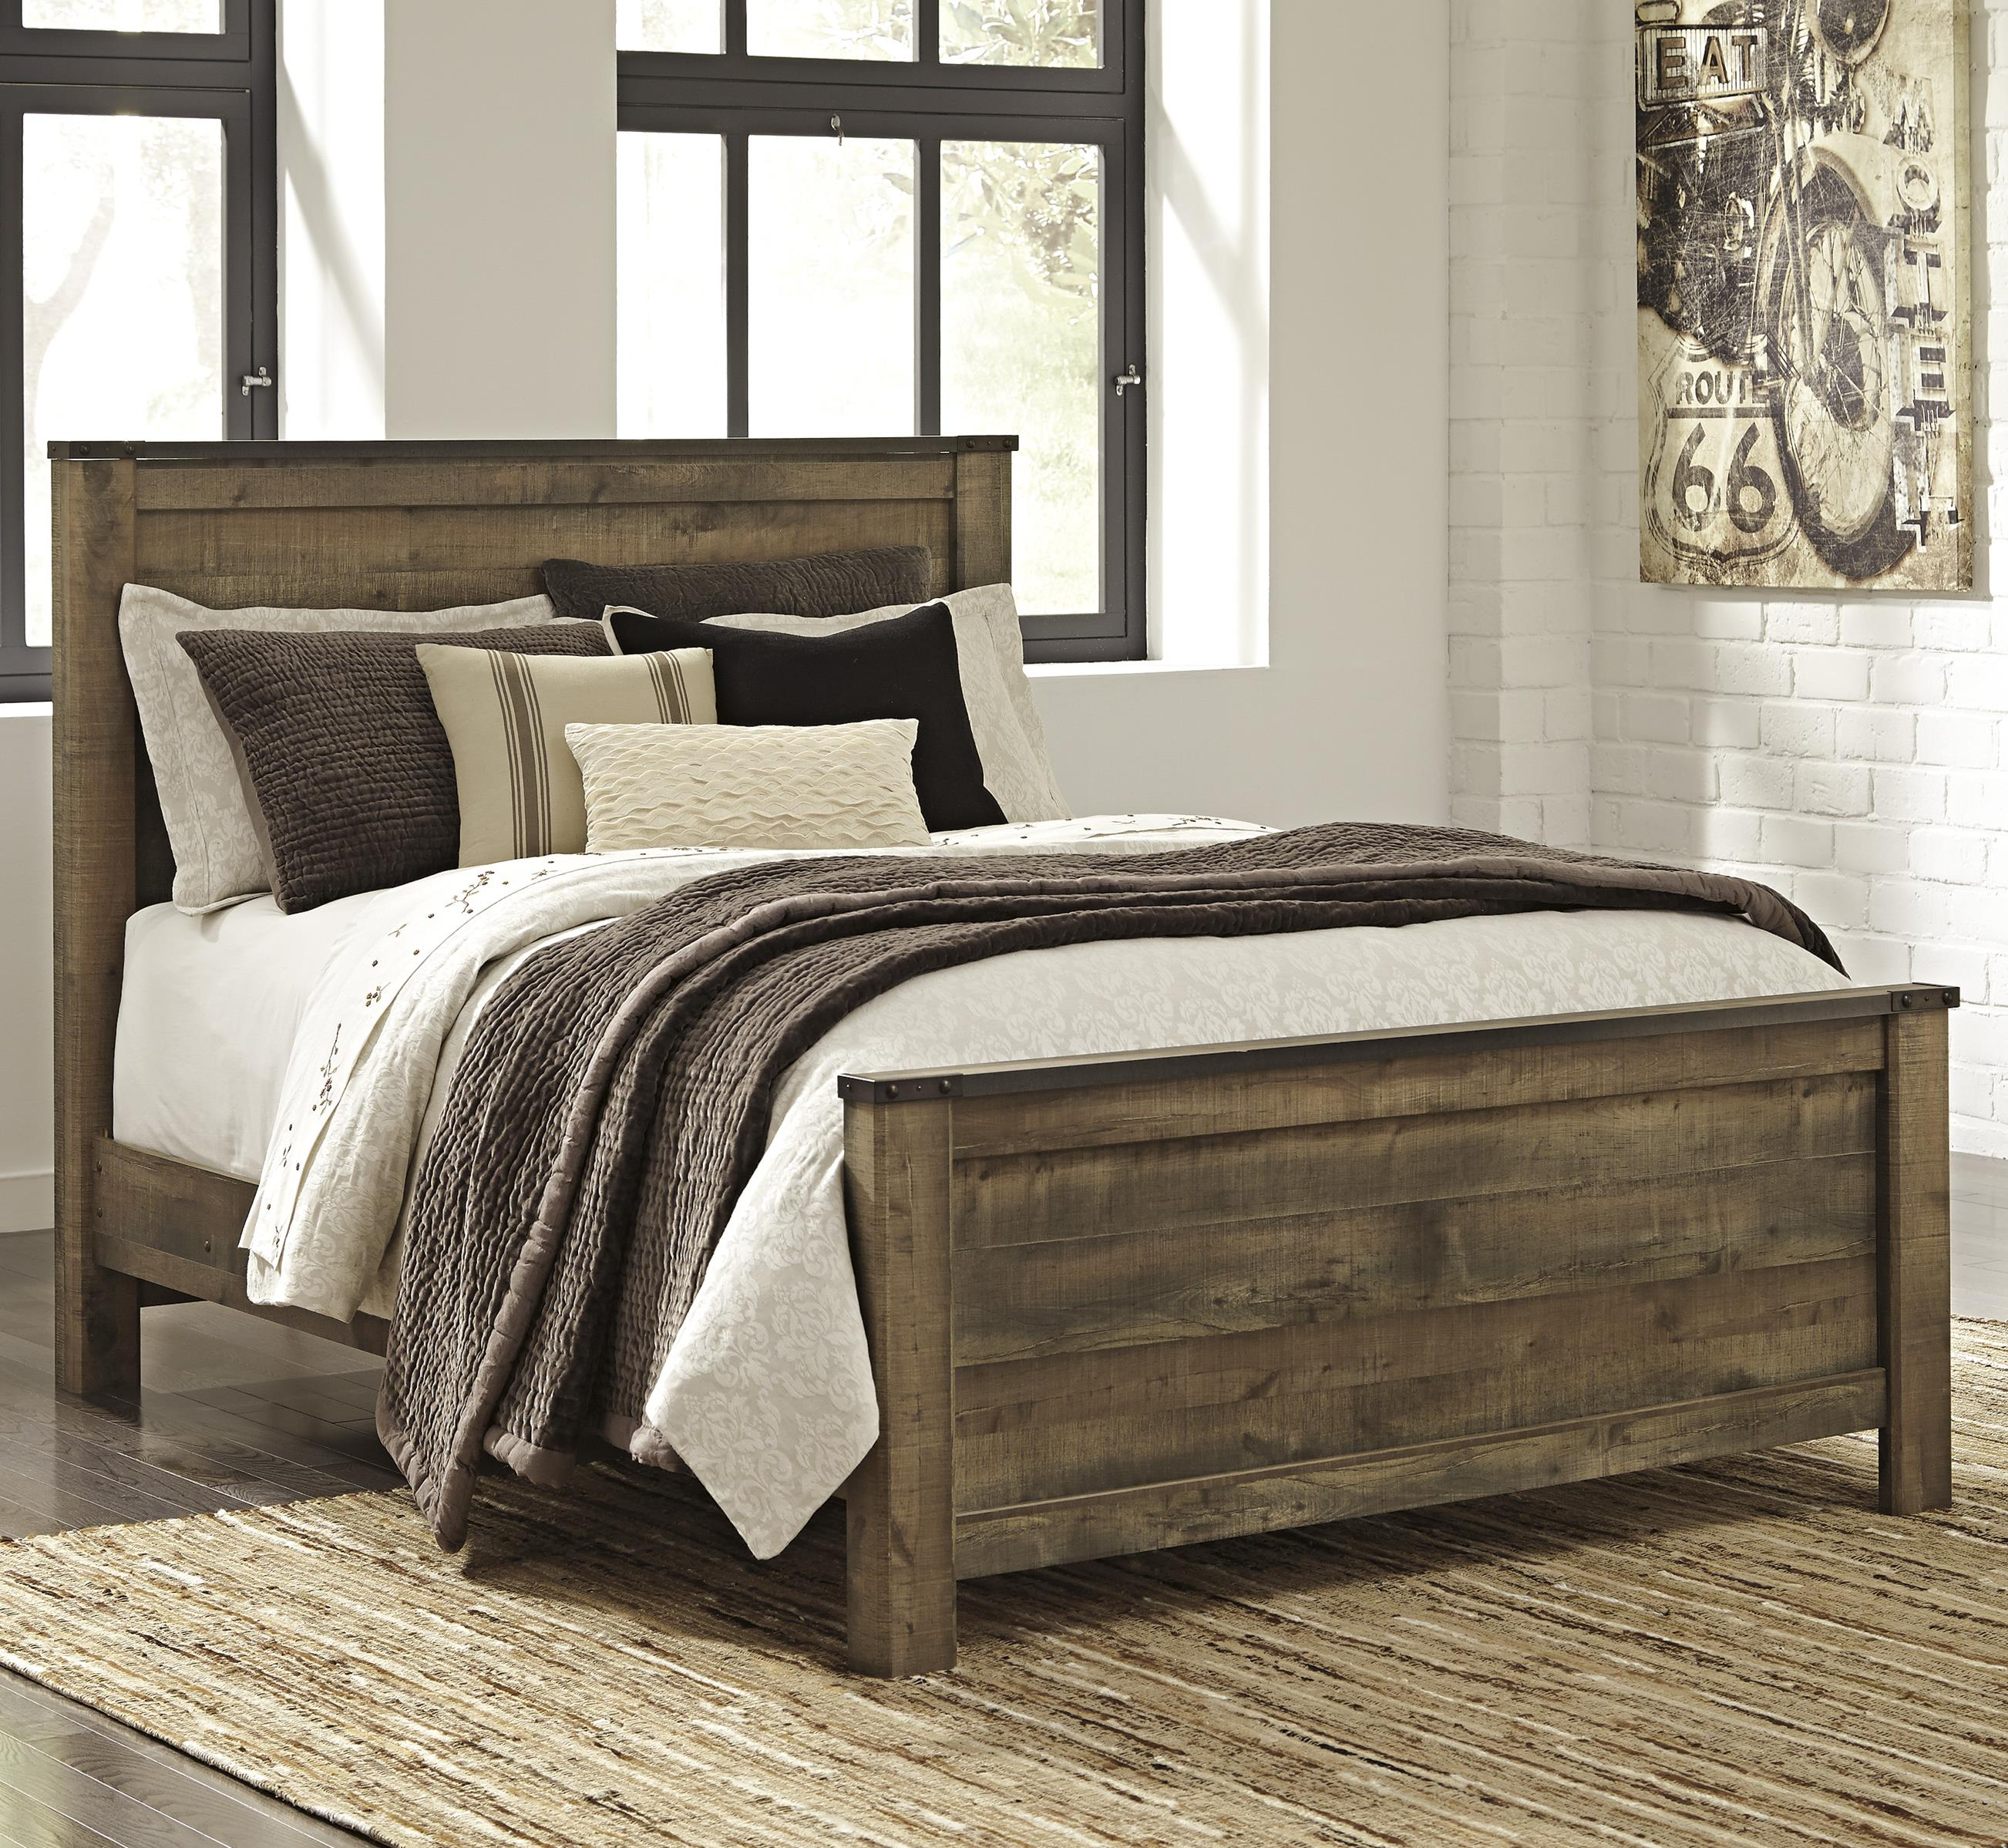 Signature Design by Ashley Trinell Queen Panel Bed - Item Number: B446-57+54+96